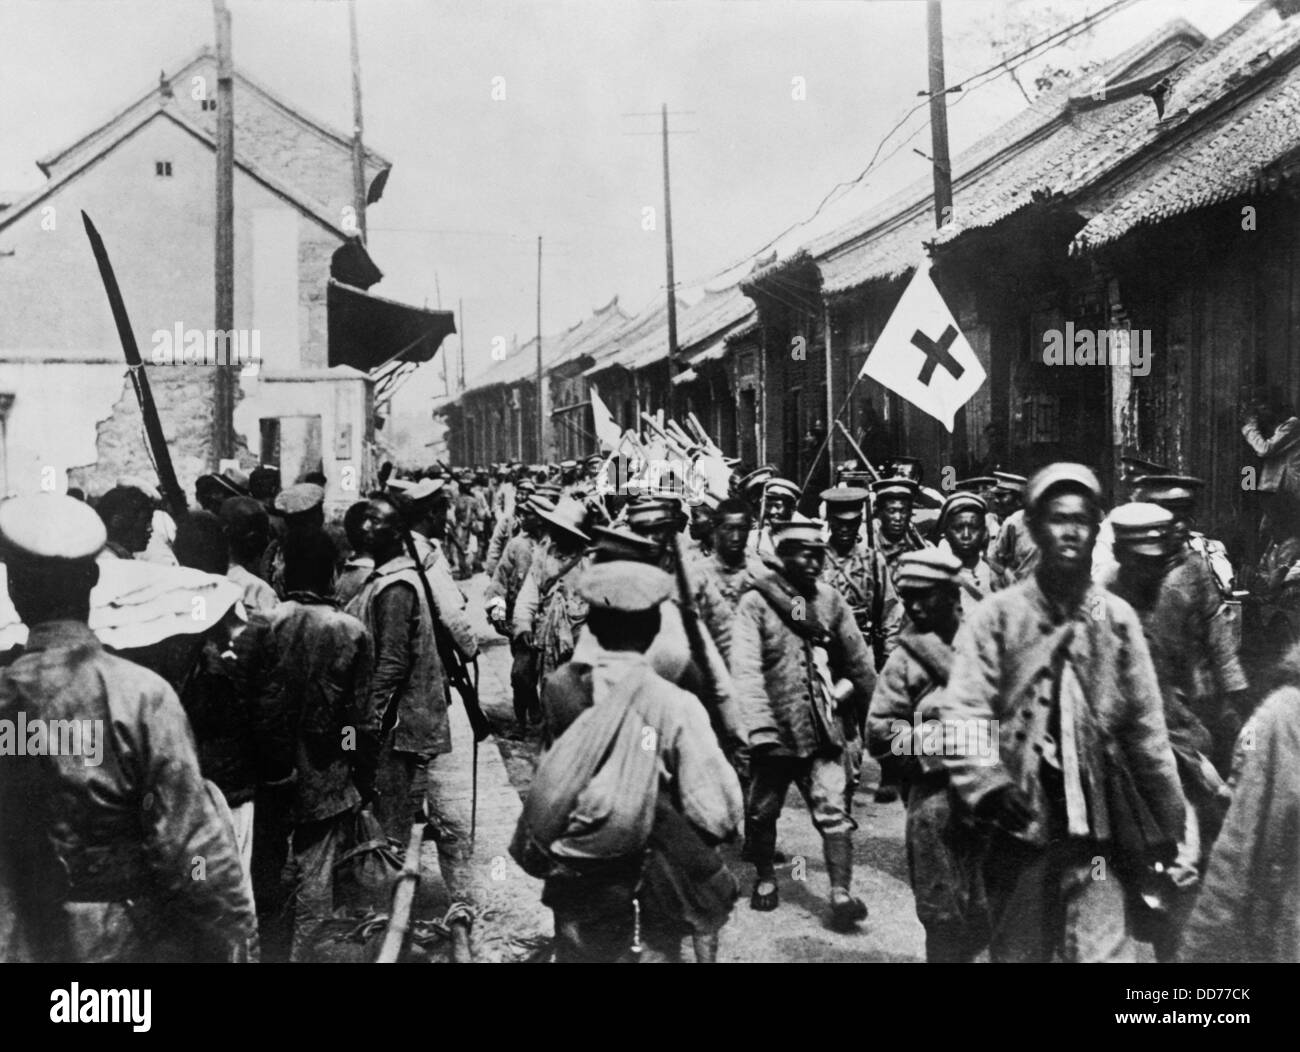 Retreating Chinese Nationalist soldiers entering the city of Tai-an. The Second Sino-Japanese War began in 1937 - Stock Image